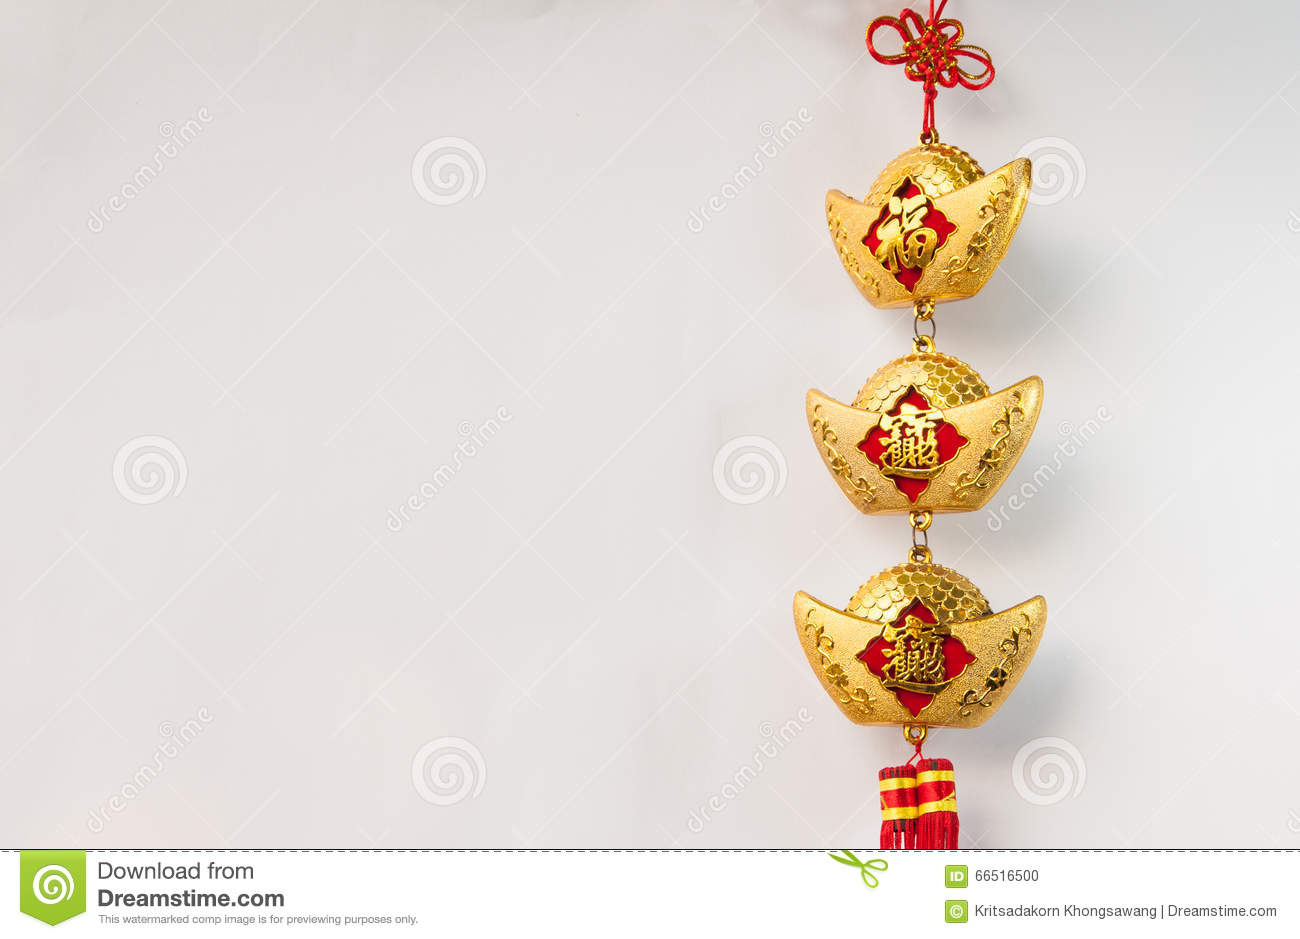 Chinese New Year Decorations And Hanging Stock Photo ...